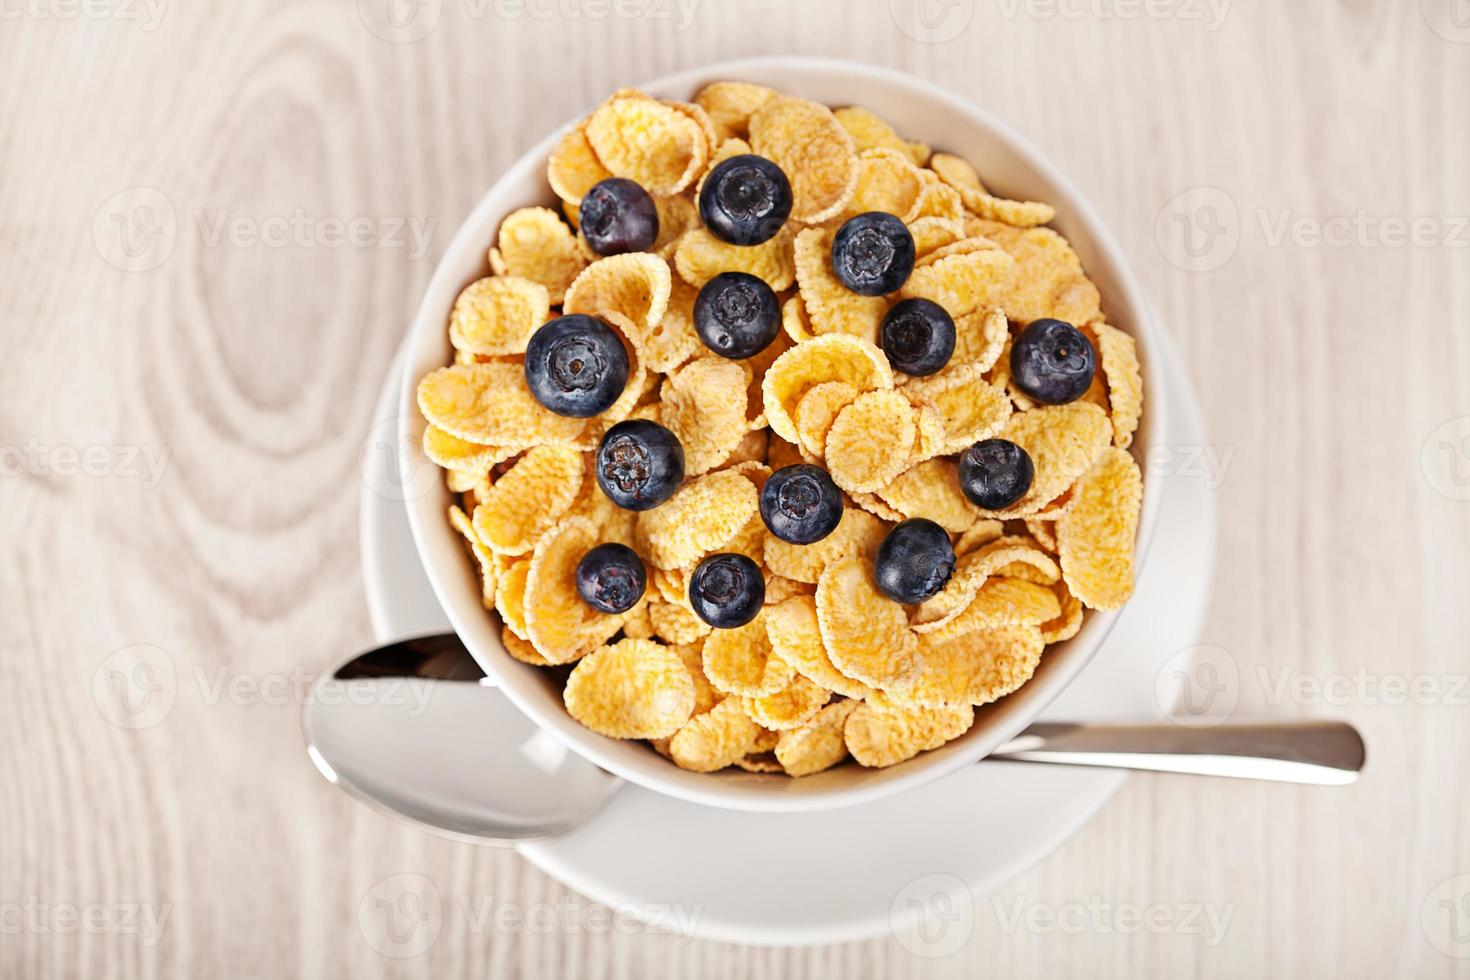 Corn flakes with blueberries breakfast photo